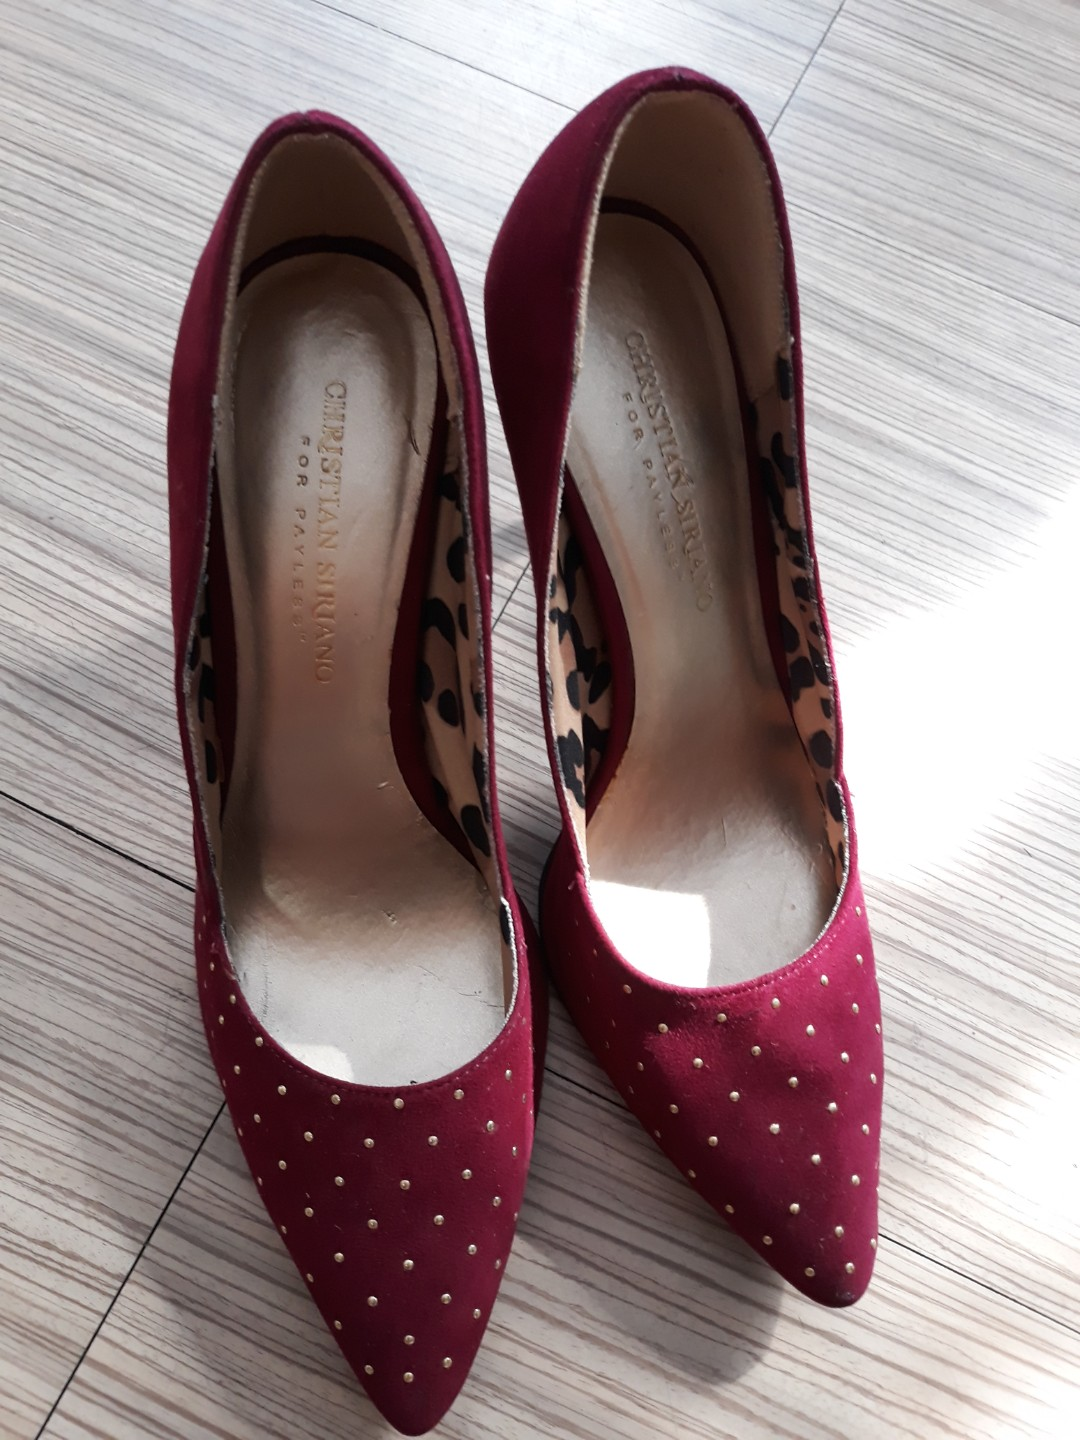 0dc296b177f5 Christian Siriano for Payless Studded Pumps